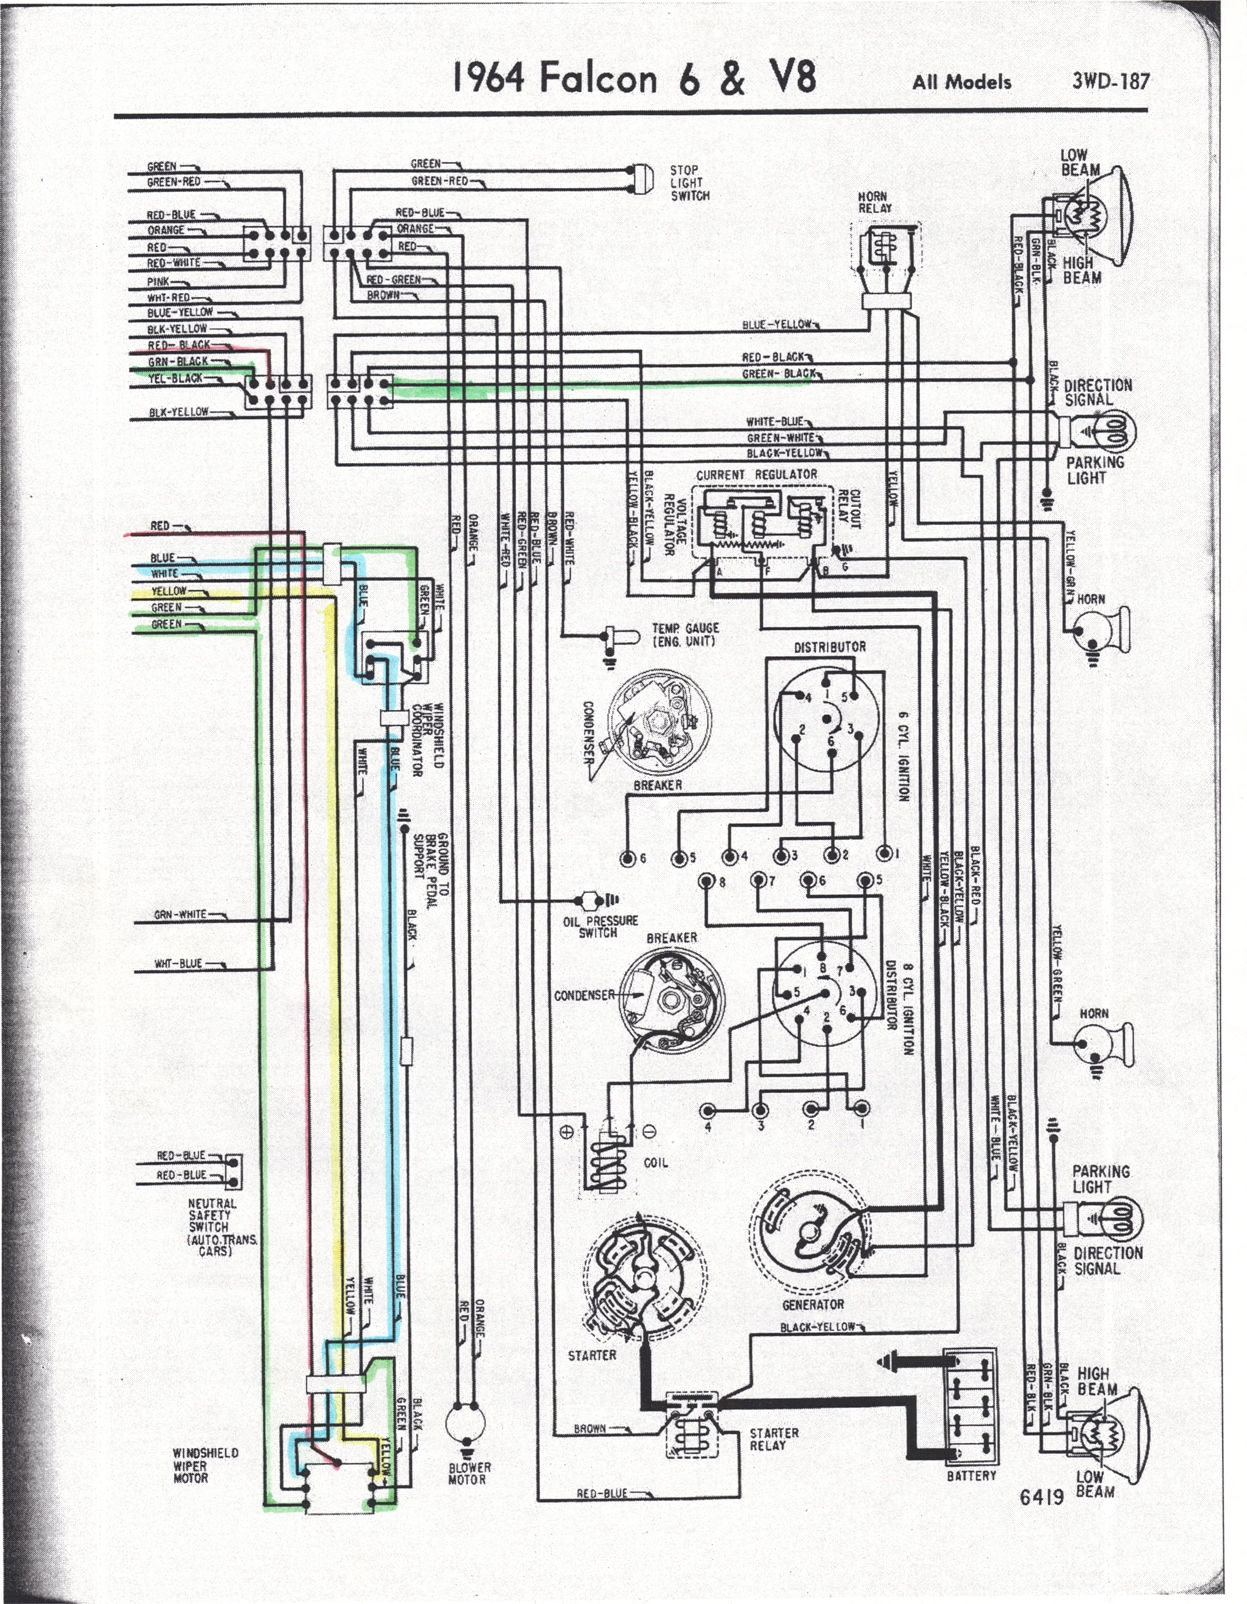 Wiring Diagrams Of 1963 Ford Comet And Falcon 6 All Models Part 1 Pin Rj11 To Rj45 Diagram Ajilbabcom Portal On Pinterest Rh Wizard Com